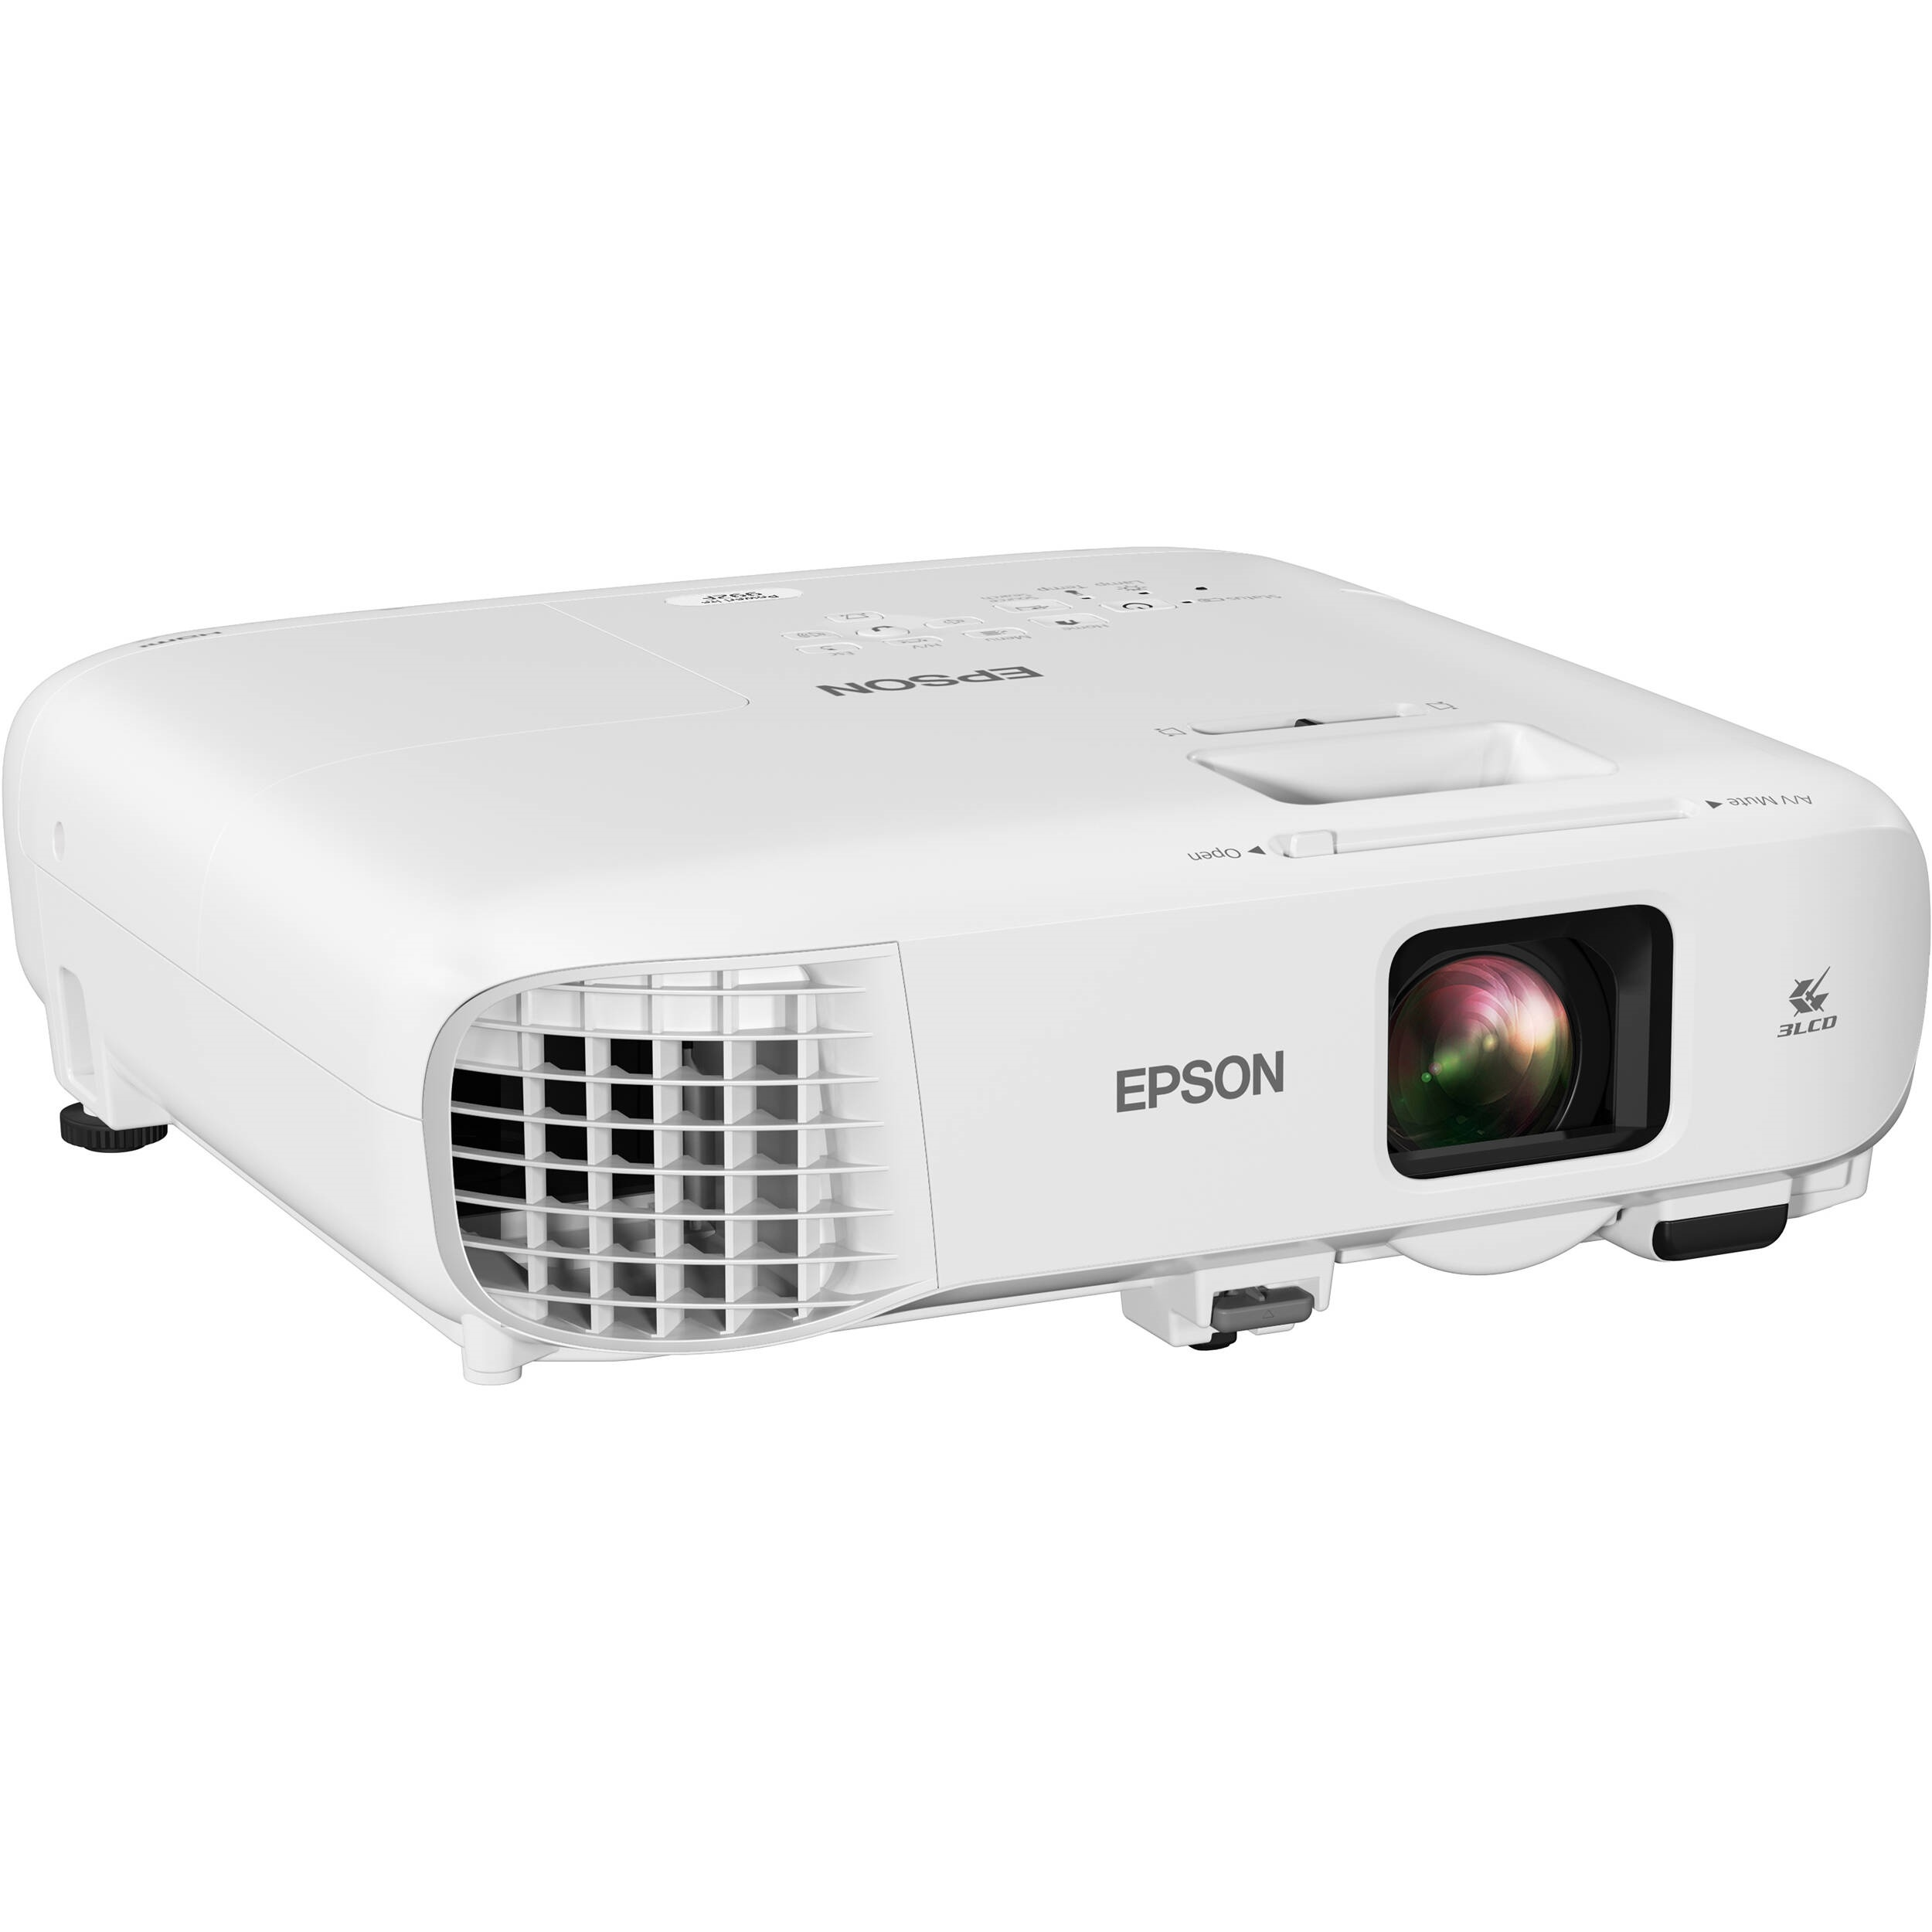 Epson PowerLite 992F 4000-Lumen Full HD Projector with Wi-Fi